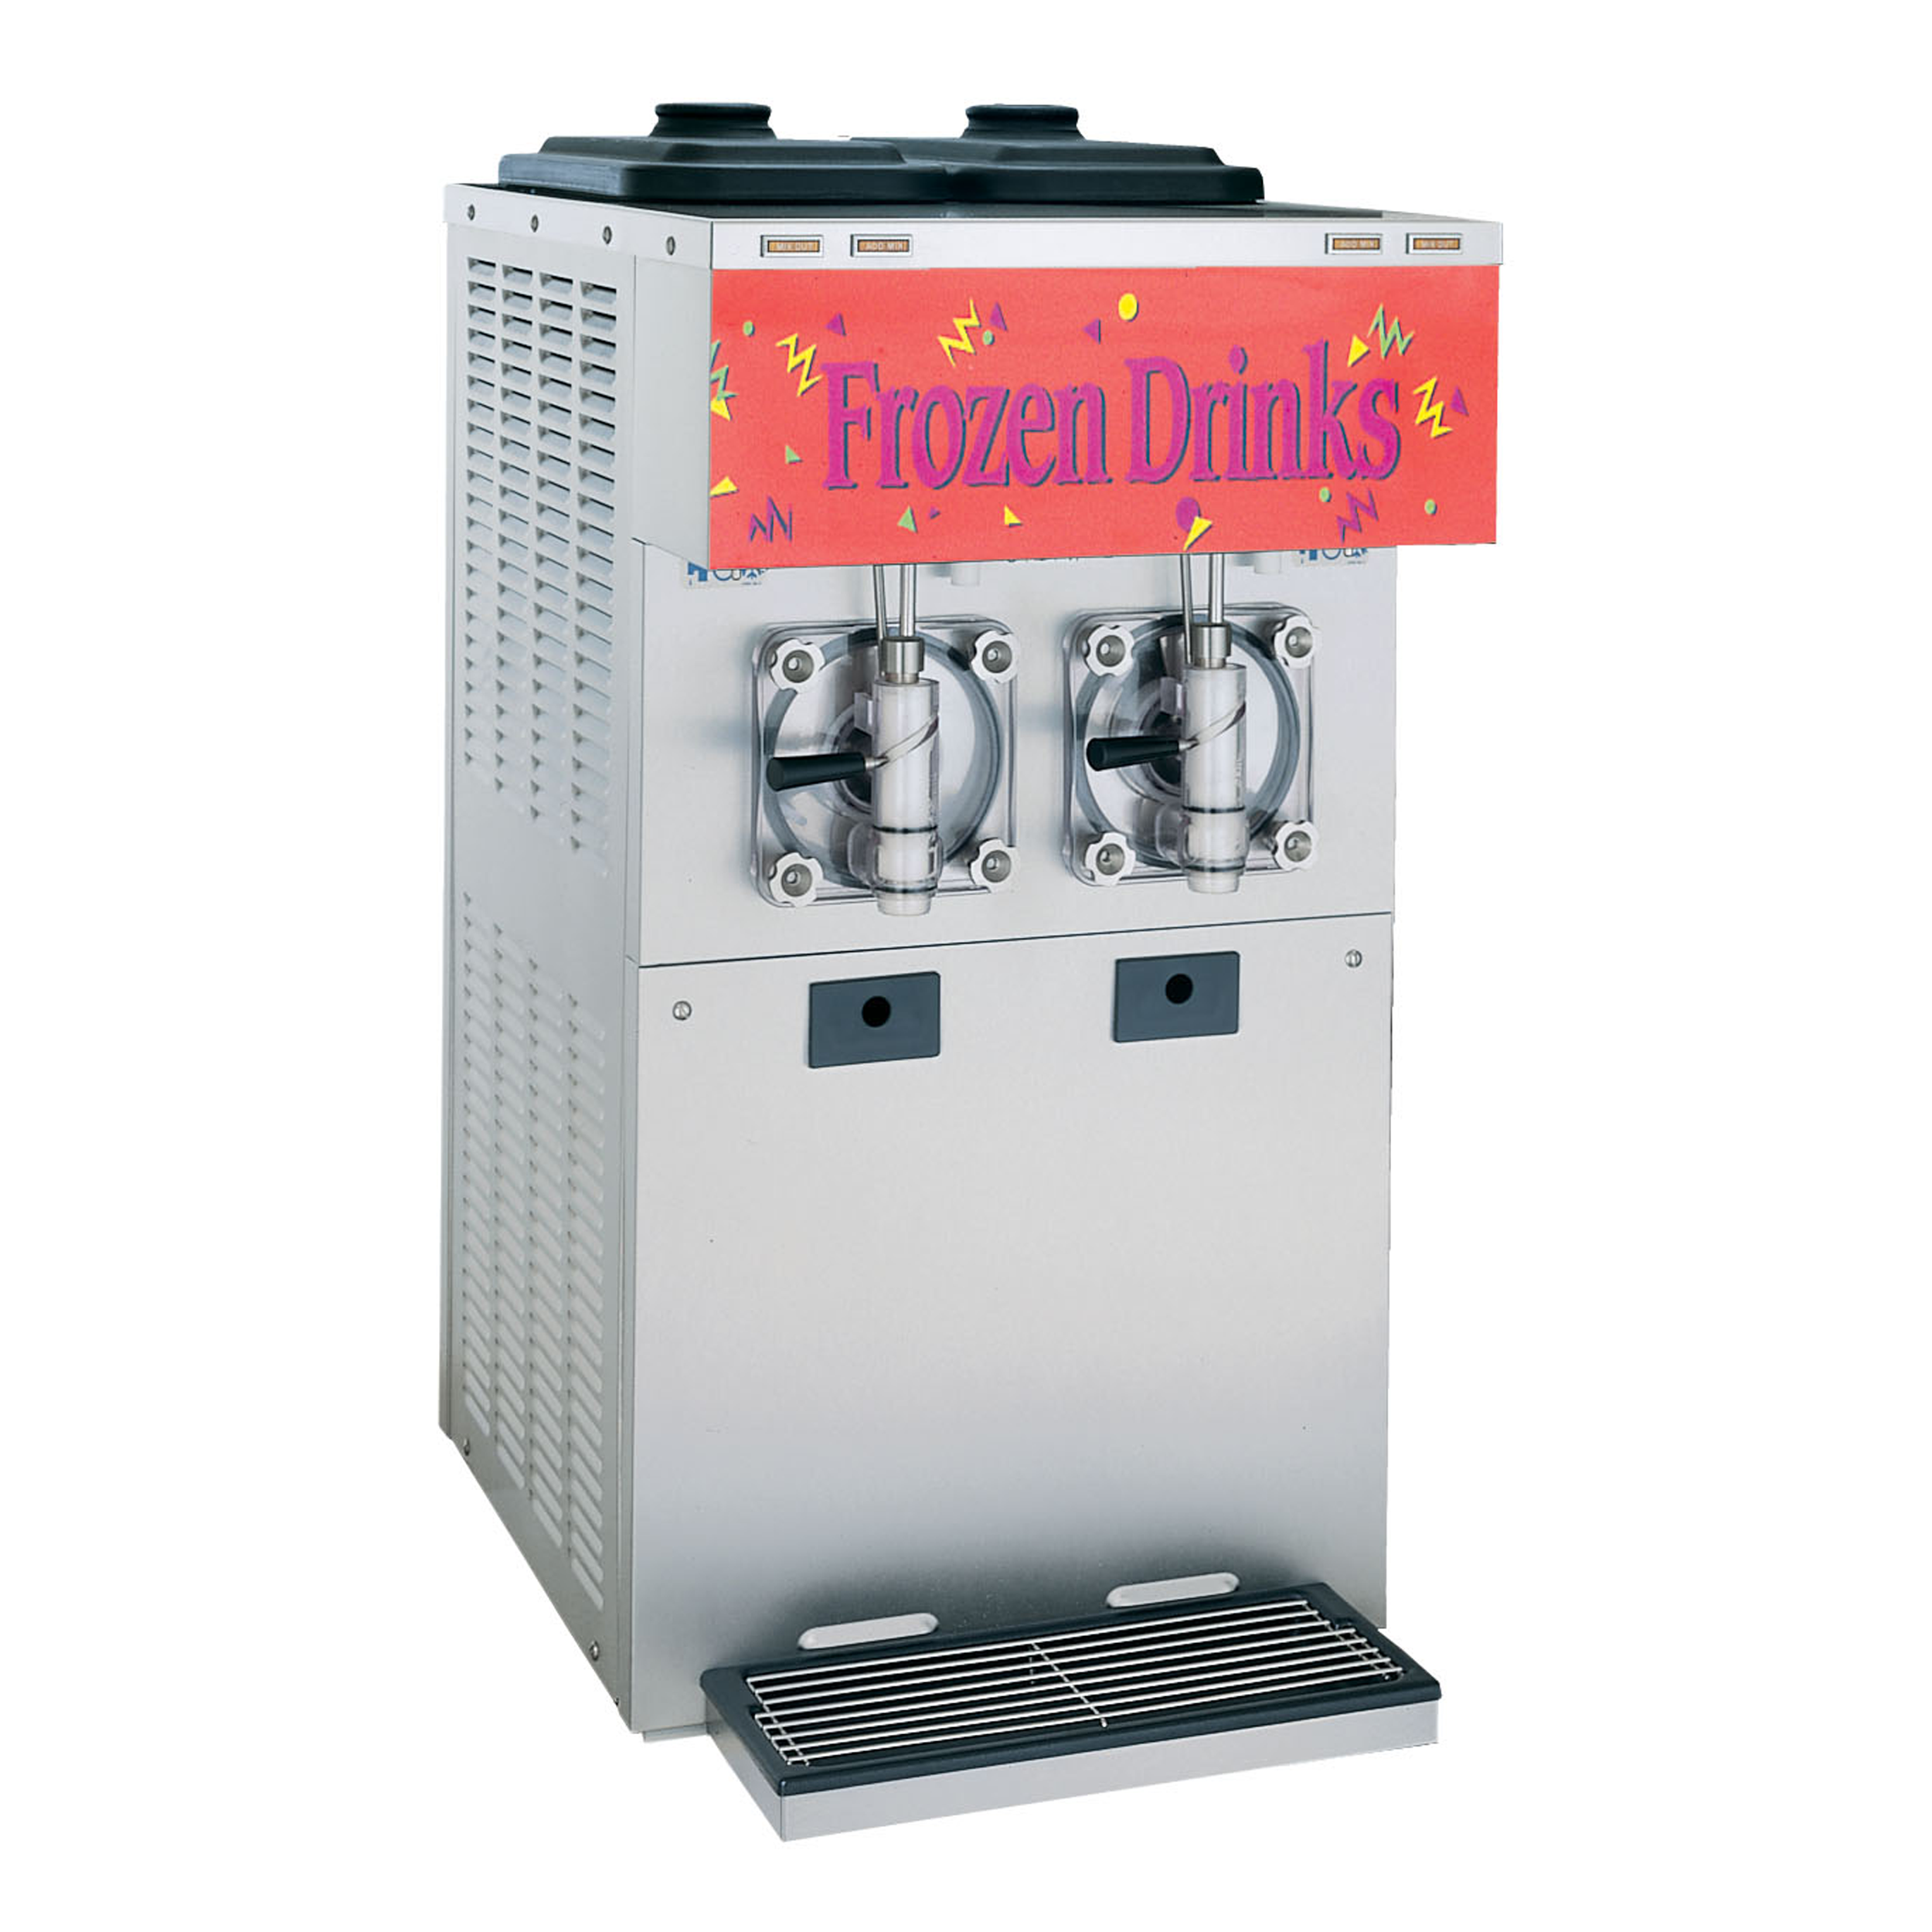 Model 432   Vary your menu by offering shakes & smoothies or frozen cocktails, fruit juices, coffees, cappuccino and tea slush beverages, all served at the desired thickness.  KEY SPECIFICATIONS:   Finished Products : Frozen Beverage, Smoothies, Shake   Installation : Countertop   Number of Flavors : 2   Freezing Cylinder QTY : 2   Freezing Cylinder Size (qt/l) : 4/3.8